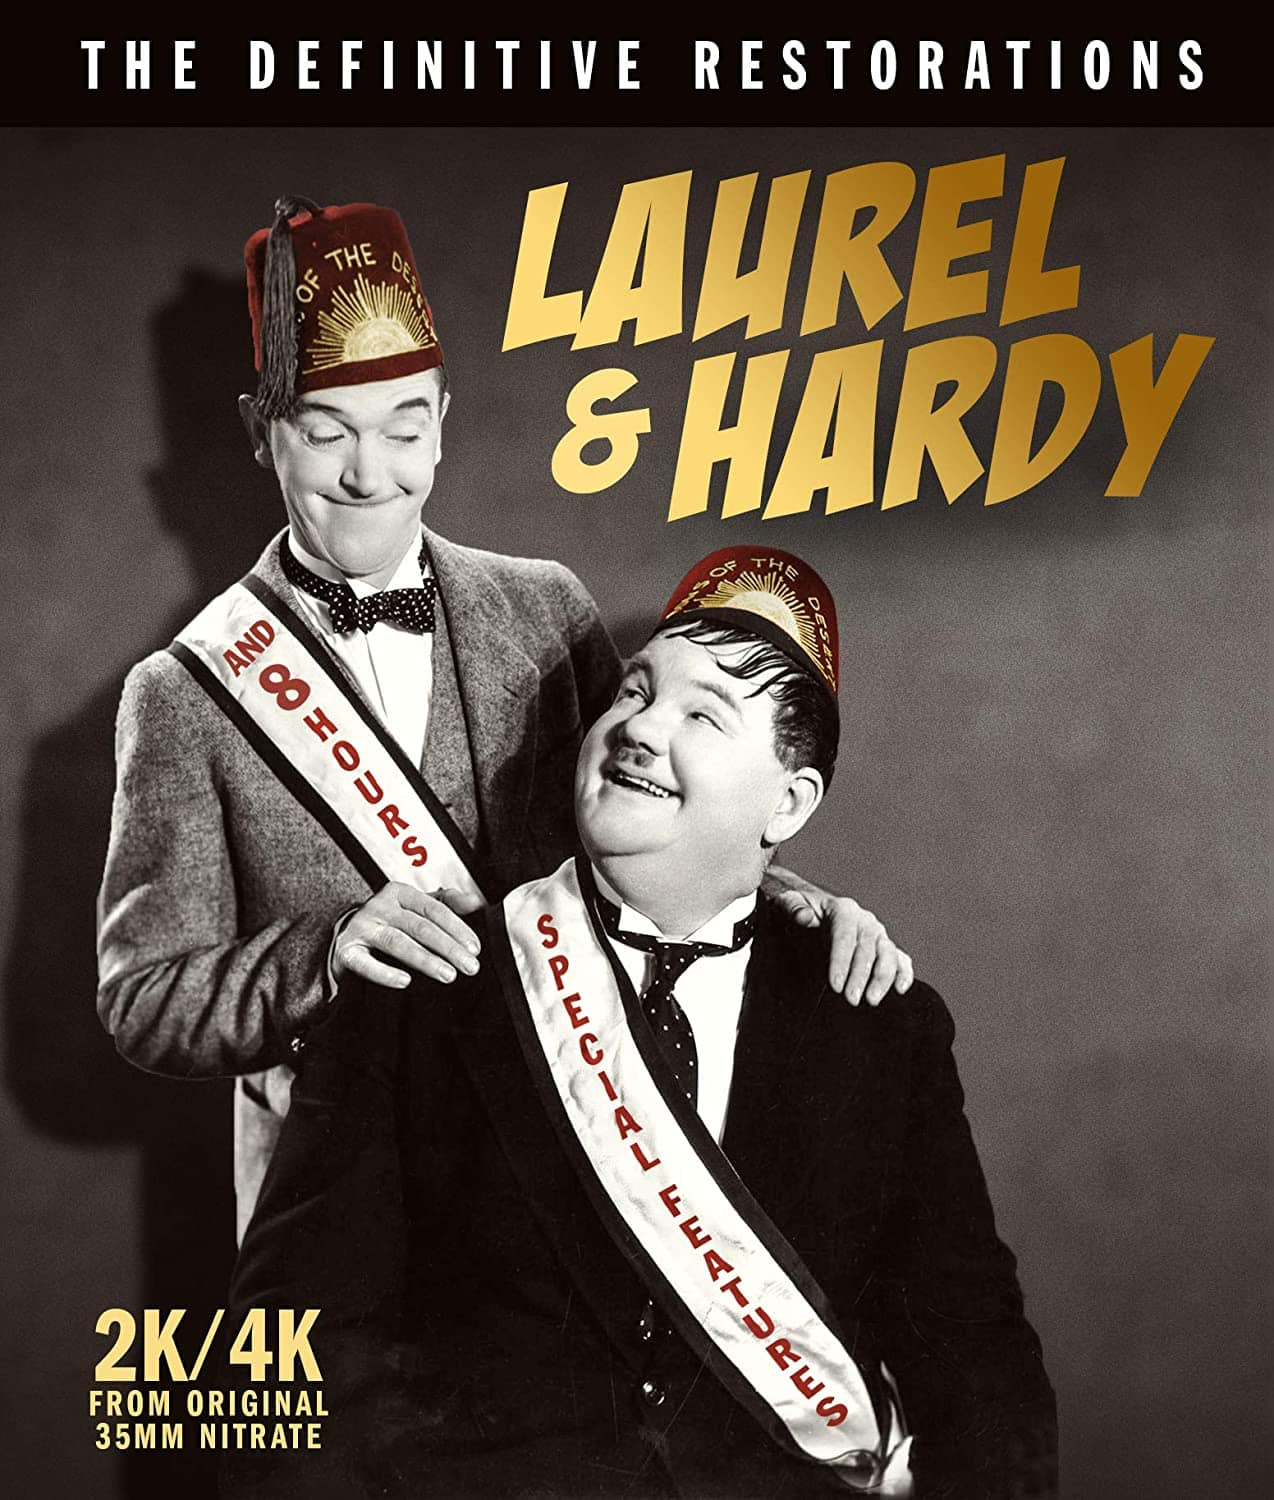 Laurel & Hardy: The Definitive Restorations (Blu-ray) $30.59 + Free Shipping